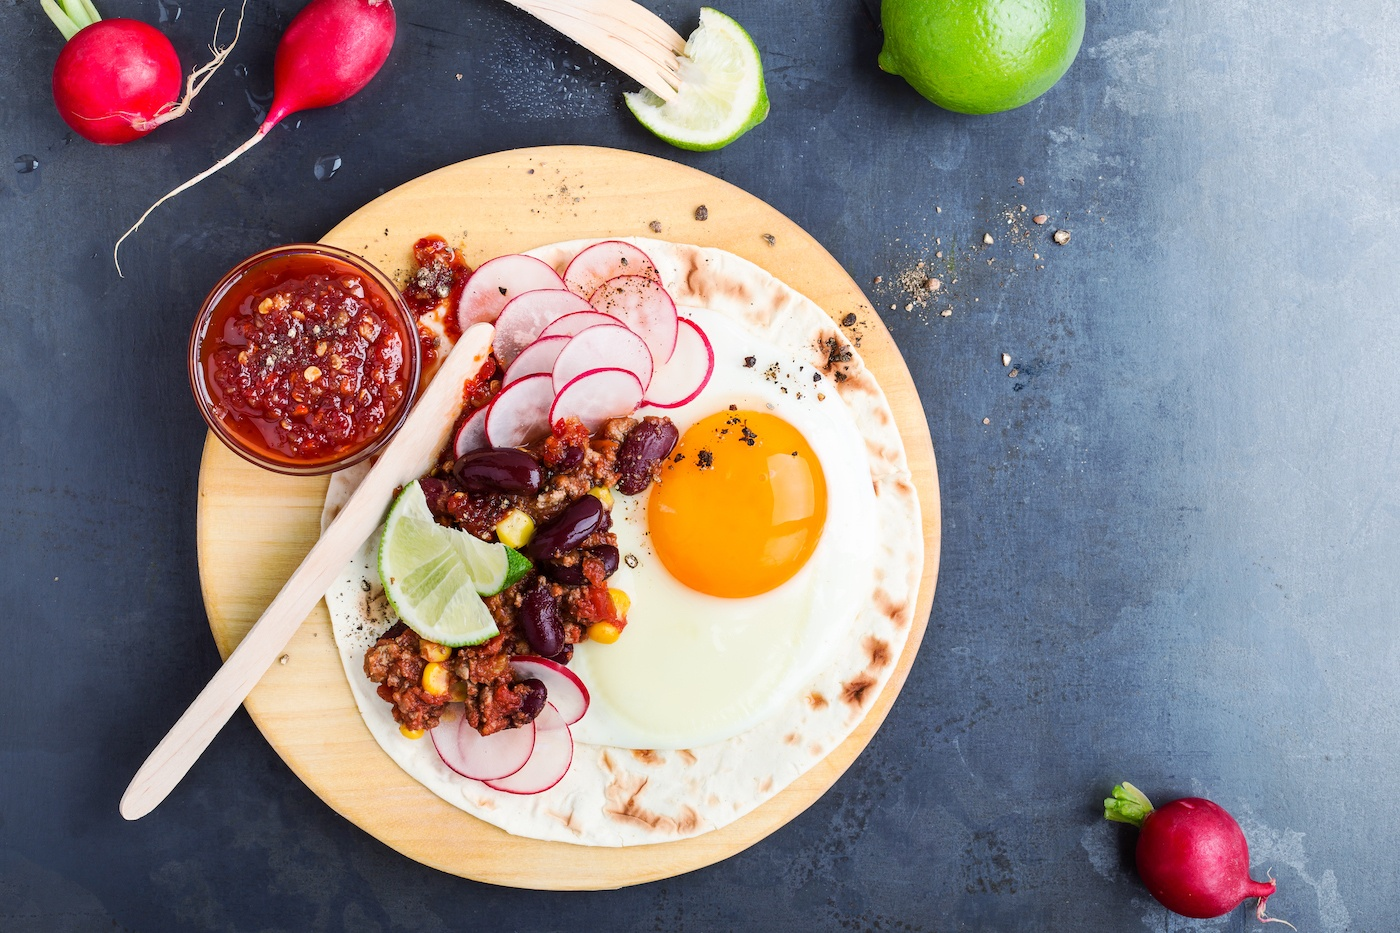 Thumbnail for Tacos Are Back on the Menu for Low-Carb Eaters With This High-Protein Tortilla Swap